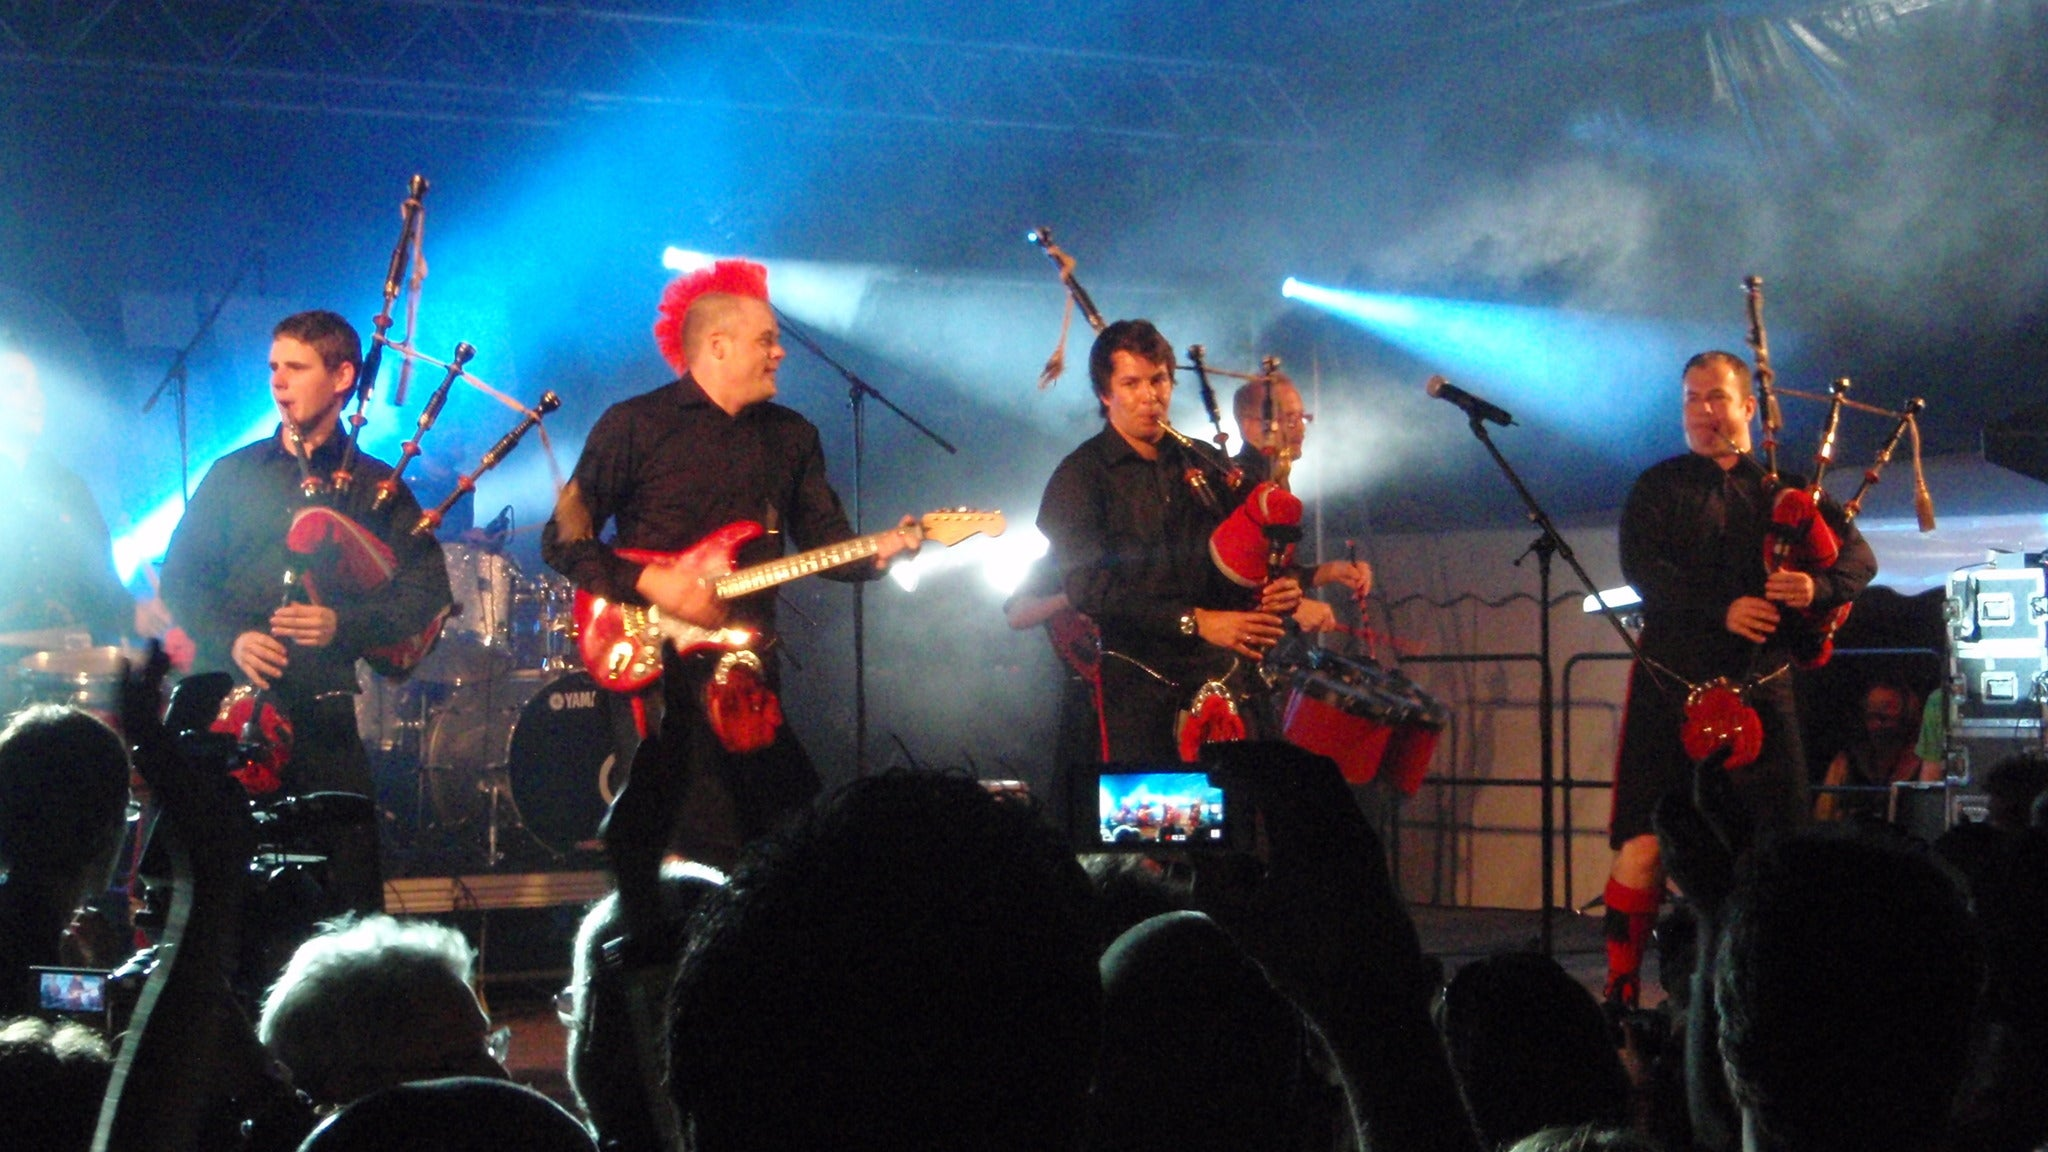 Red Hot Chilli Pipers at Effingham Performance Center